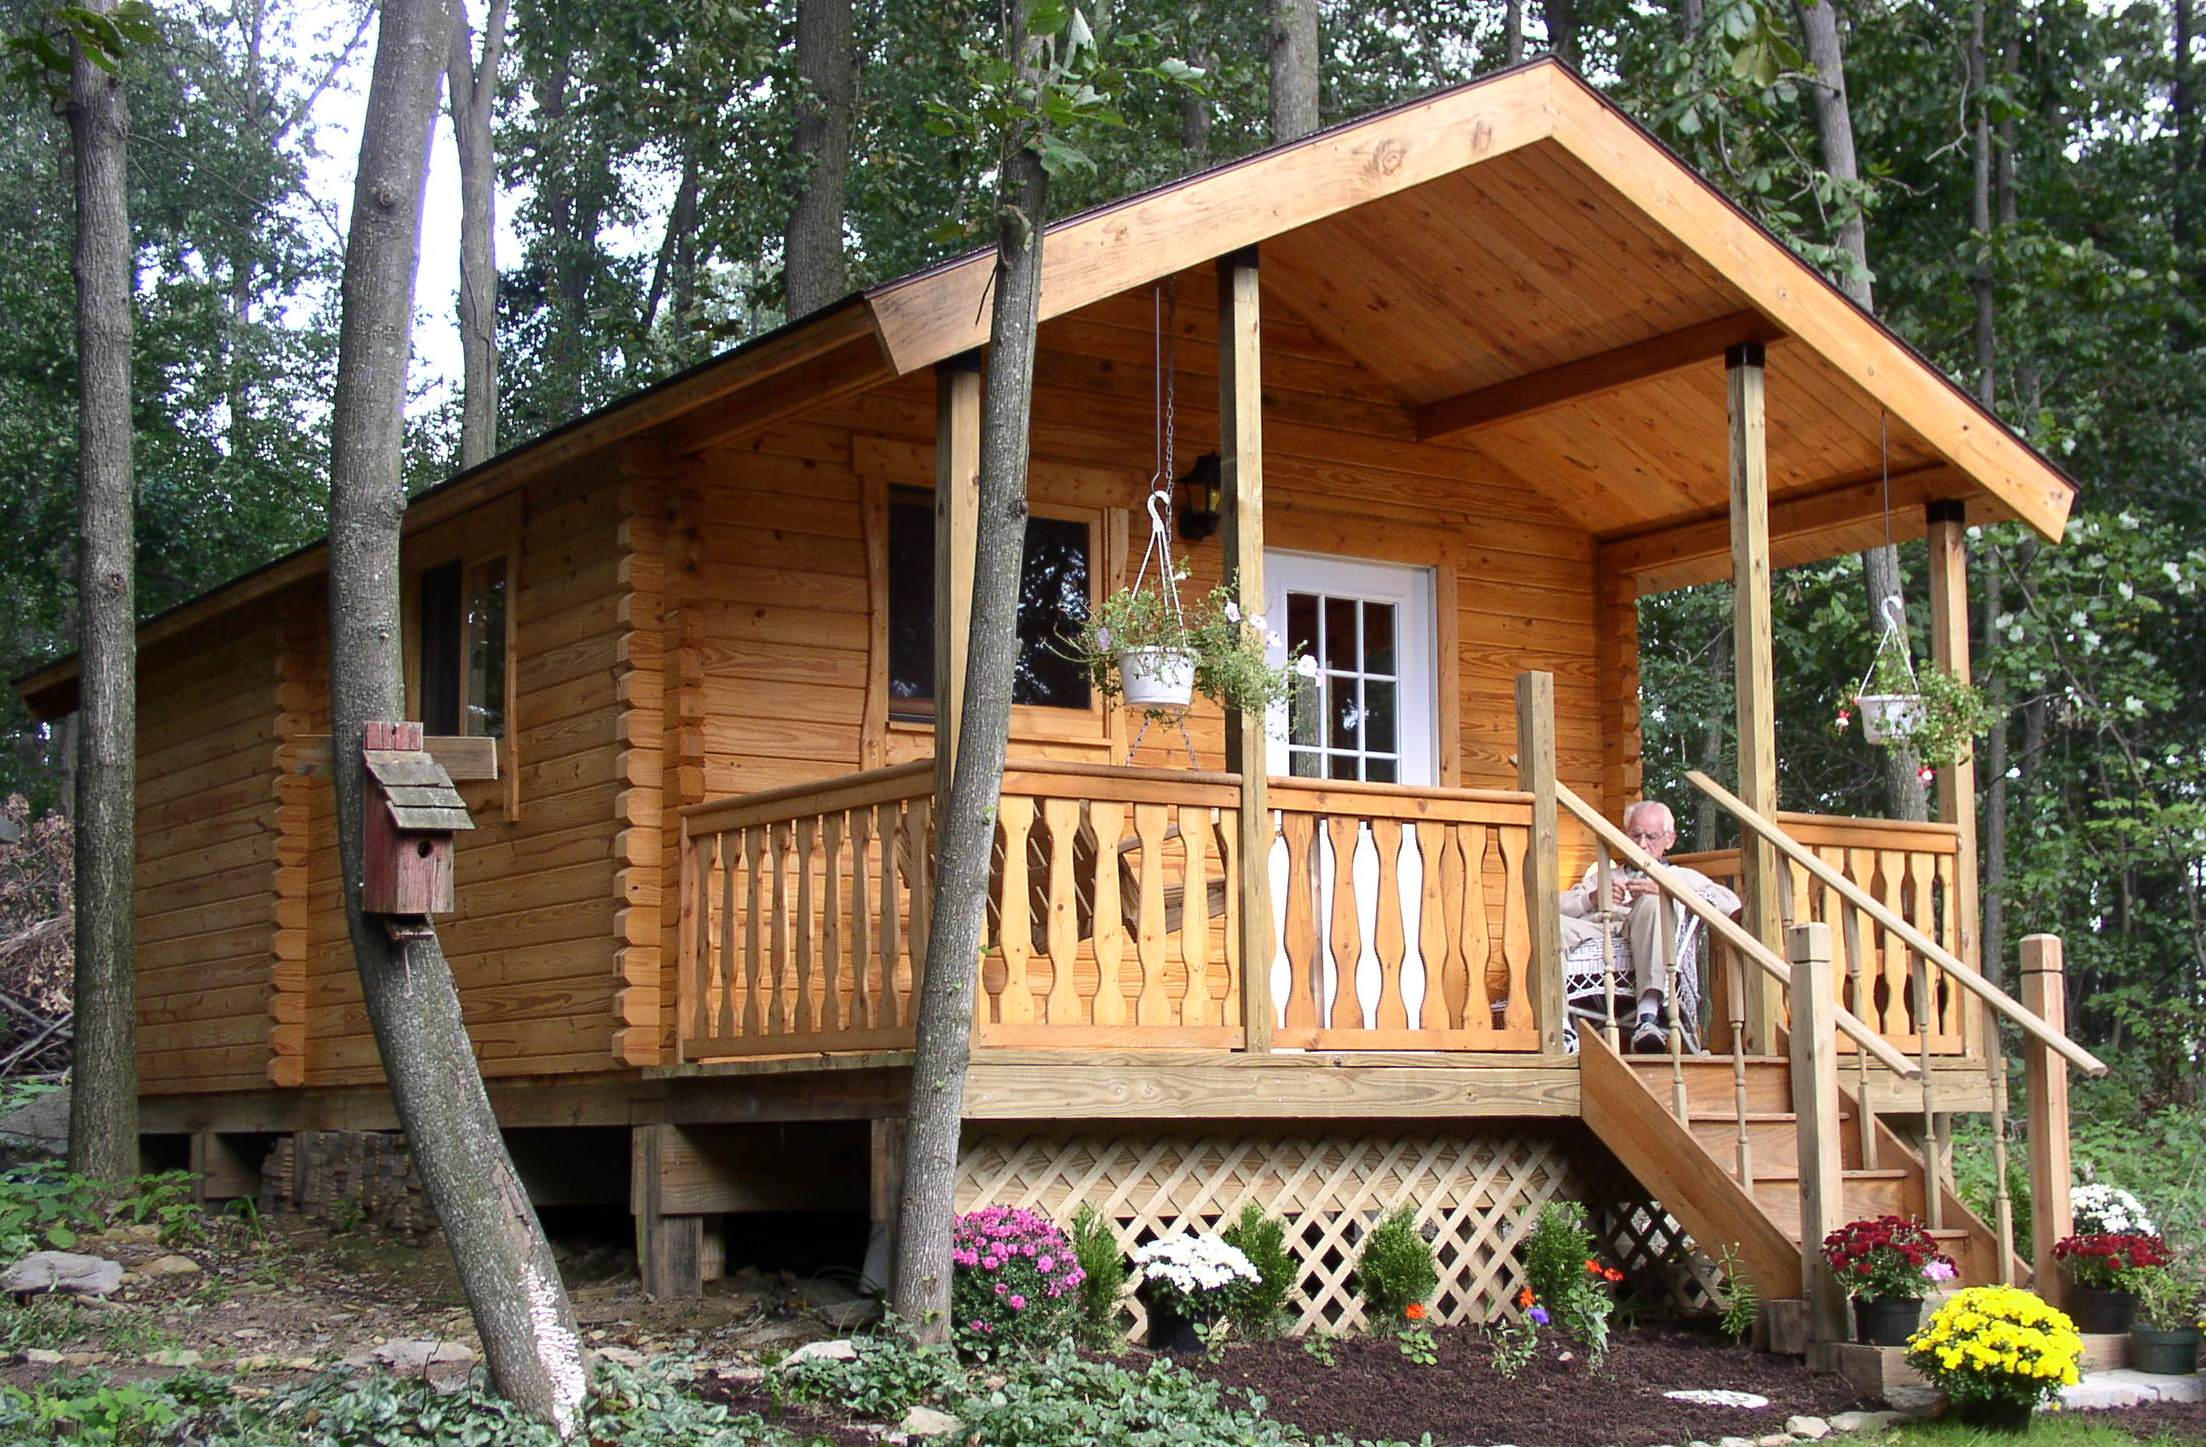 Tiny Log Home Designs: Mid-Atlantic Tiny House Expo